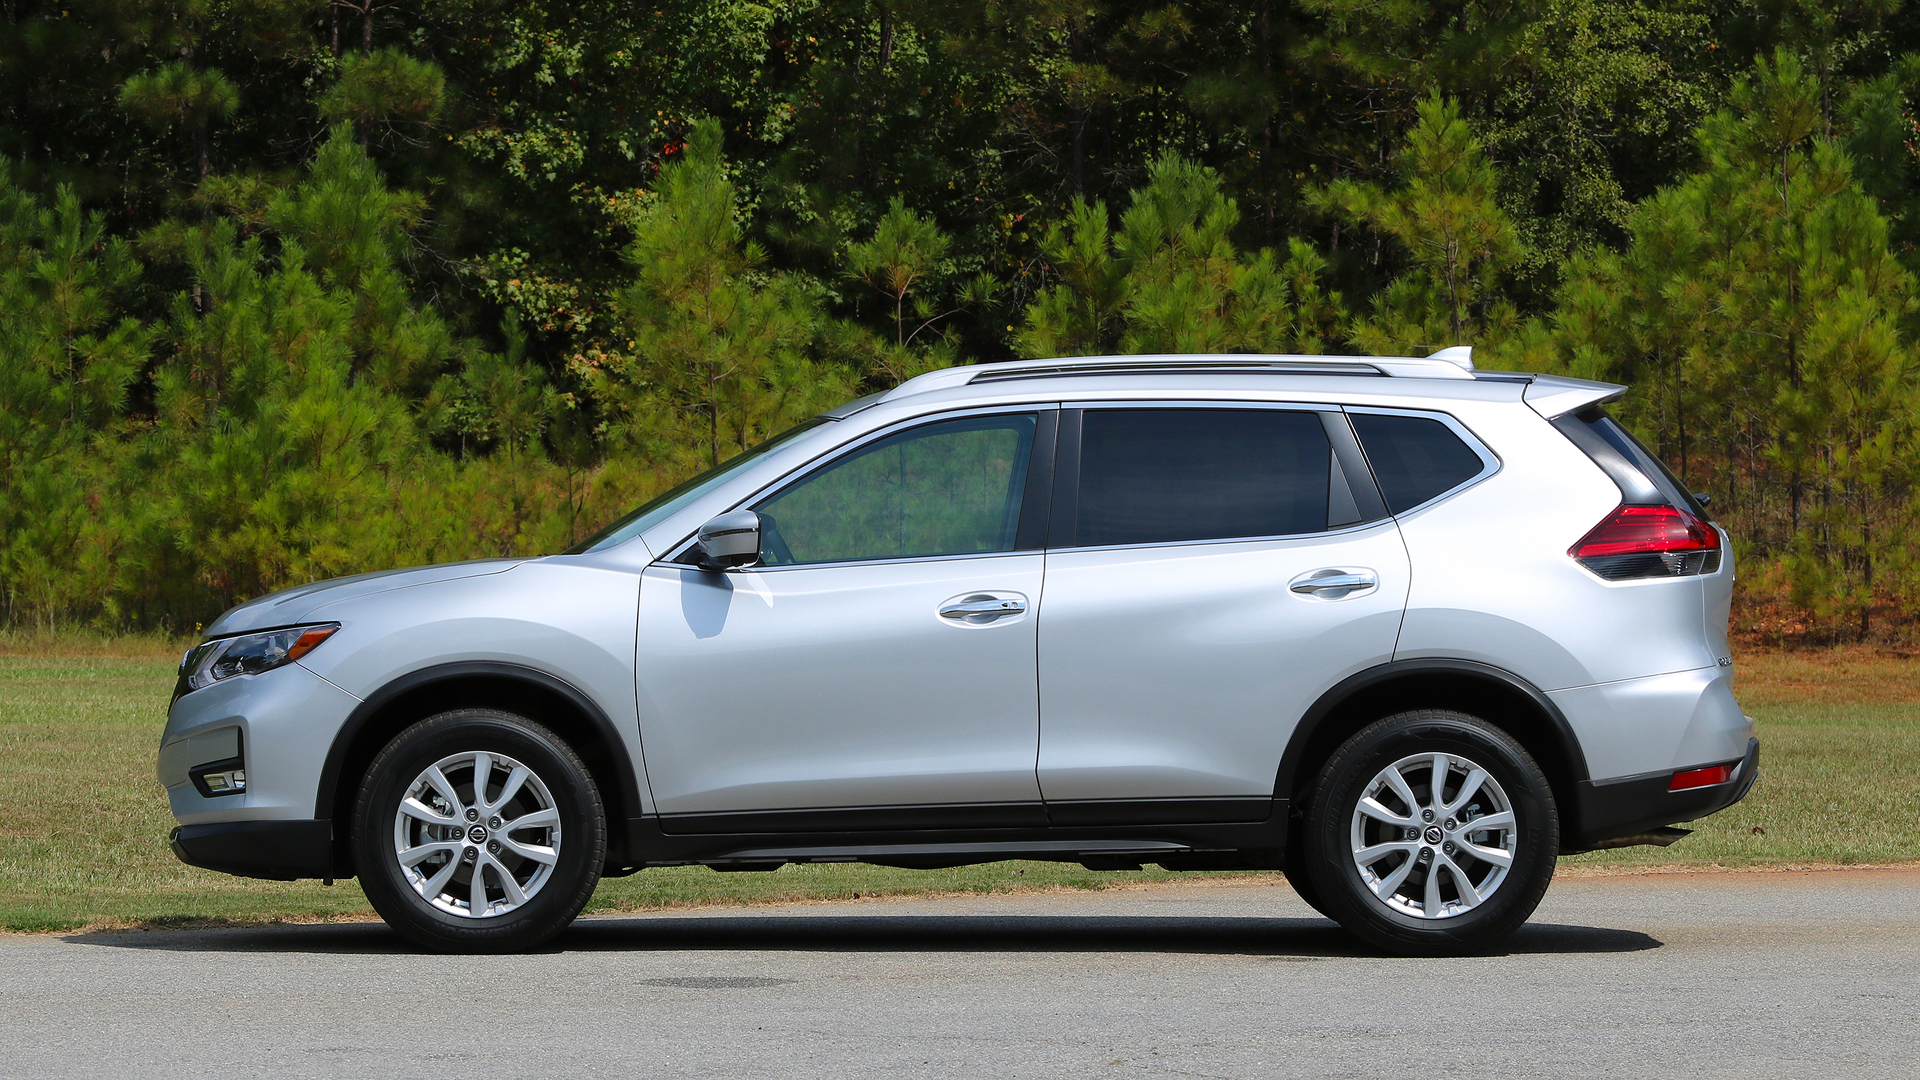 nissan rogue x trail facelift 2017 forocoches. Black Bedroom Furniture Sets. Home Design Ideas